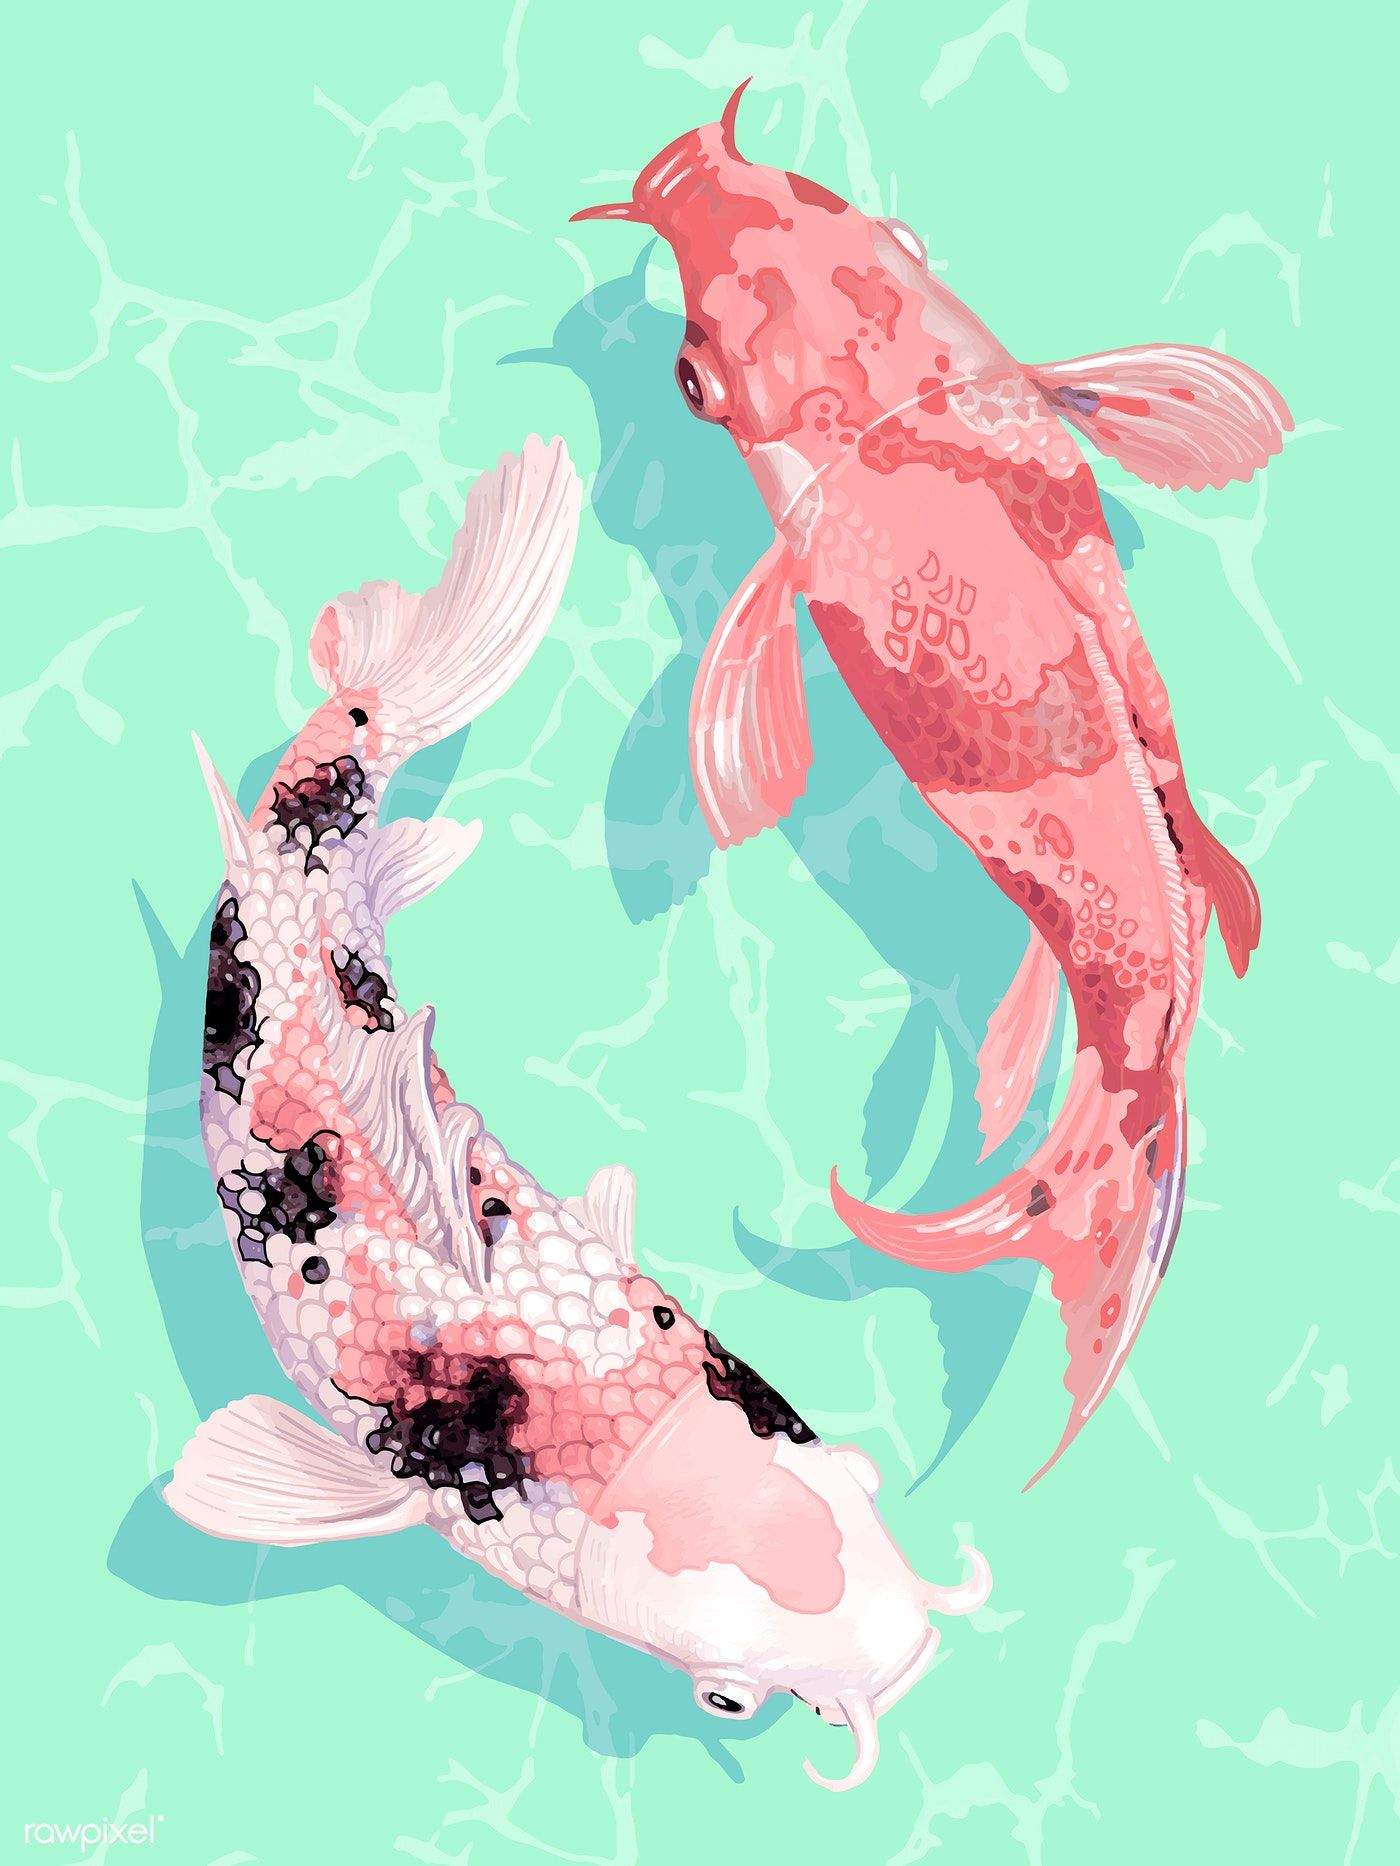 Two Japanese Koi Fish Swimming Wall Art Print And Poster Vector Premium Image By Rawpixel Com Techi Koi Fish Drawing Koi Art Japanese Koi